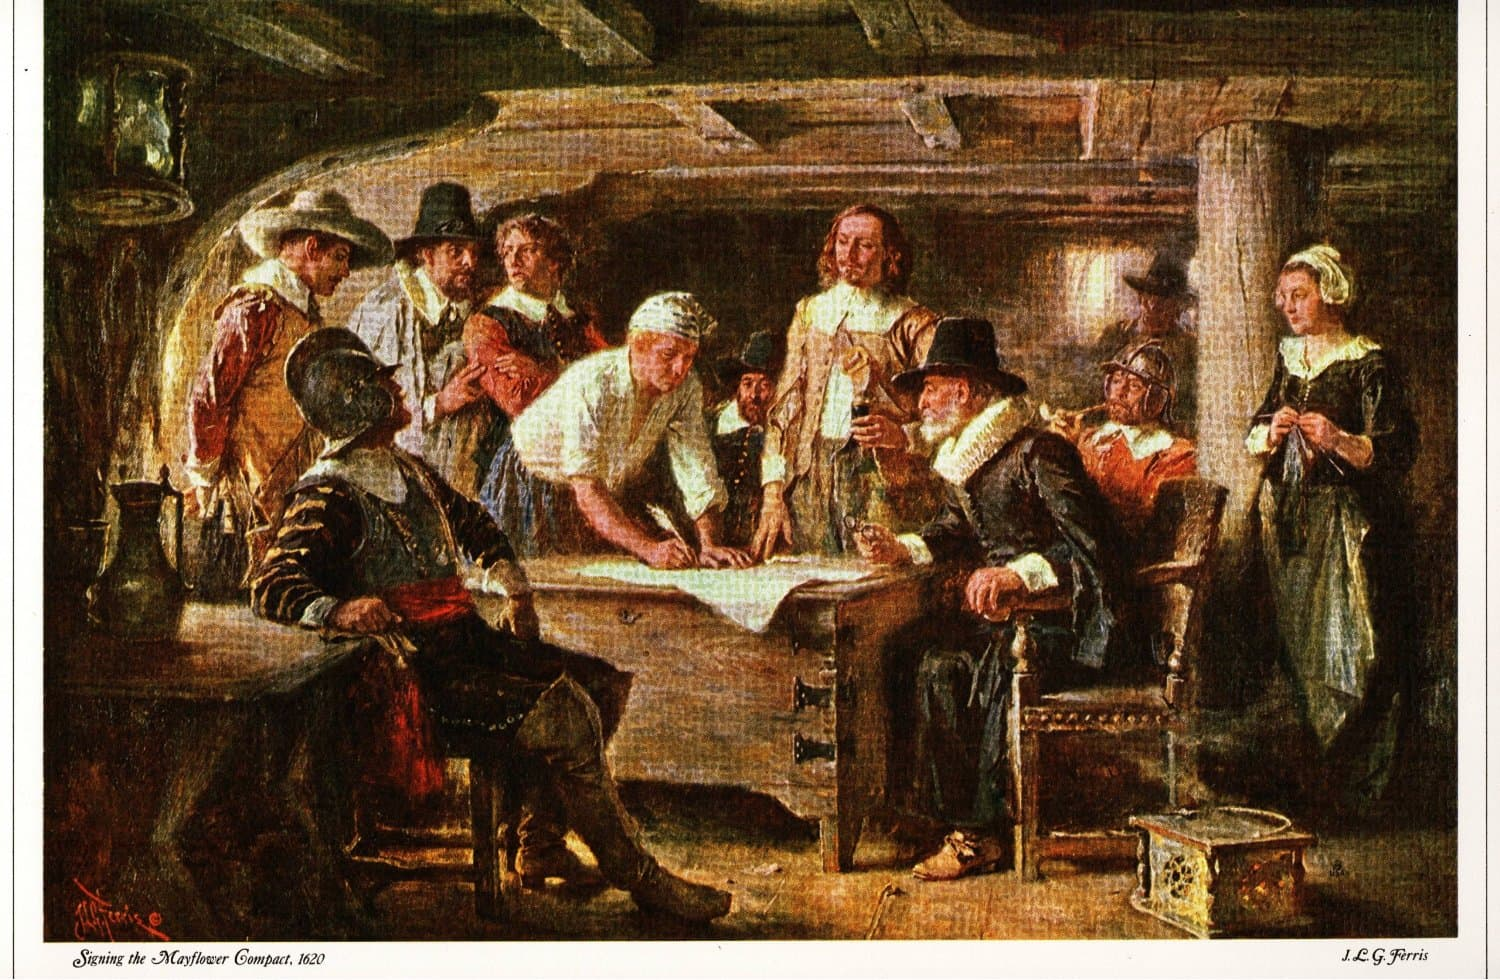 the history of the mayflower compact The mayflower compact continued the idea of law made by and for the people the mayflower society history of the mayflower pilgrims the mayflower society.